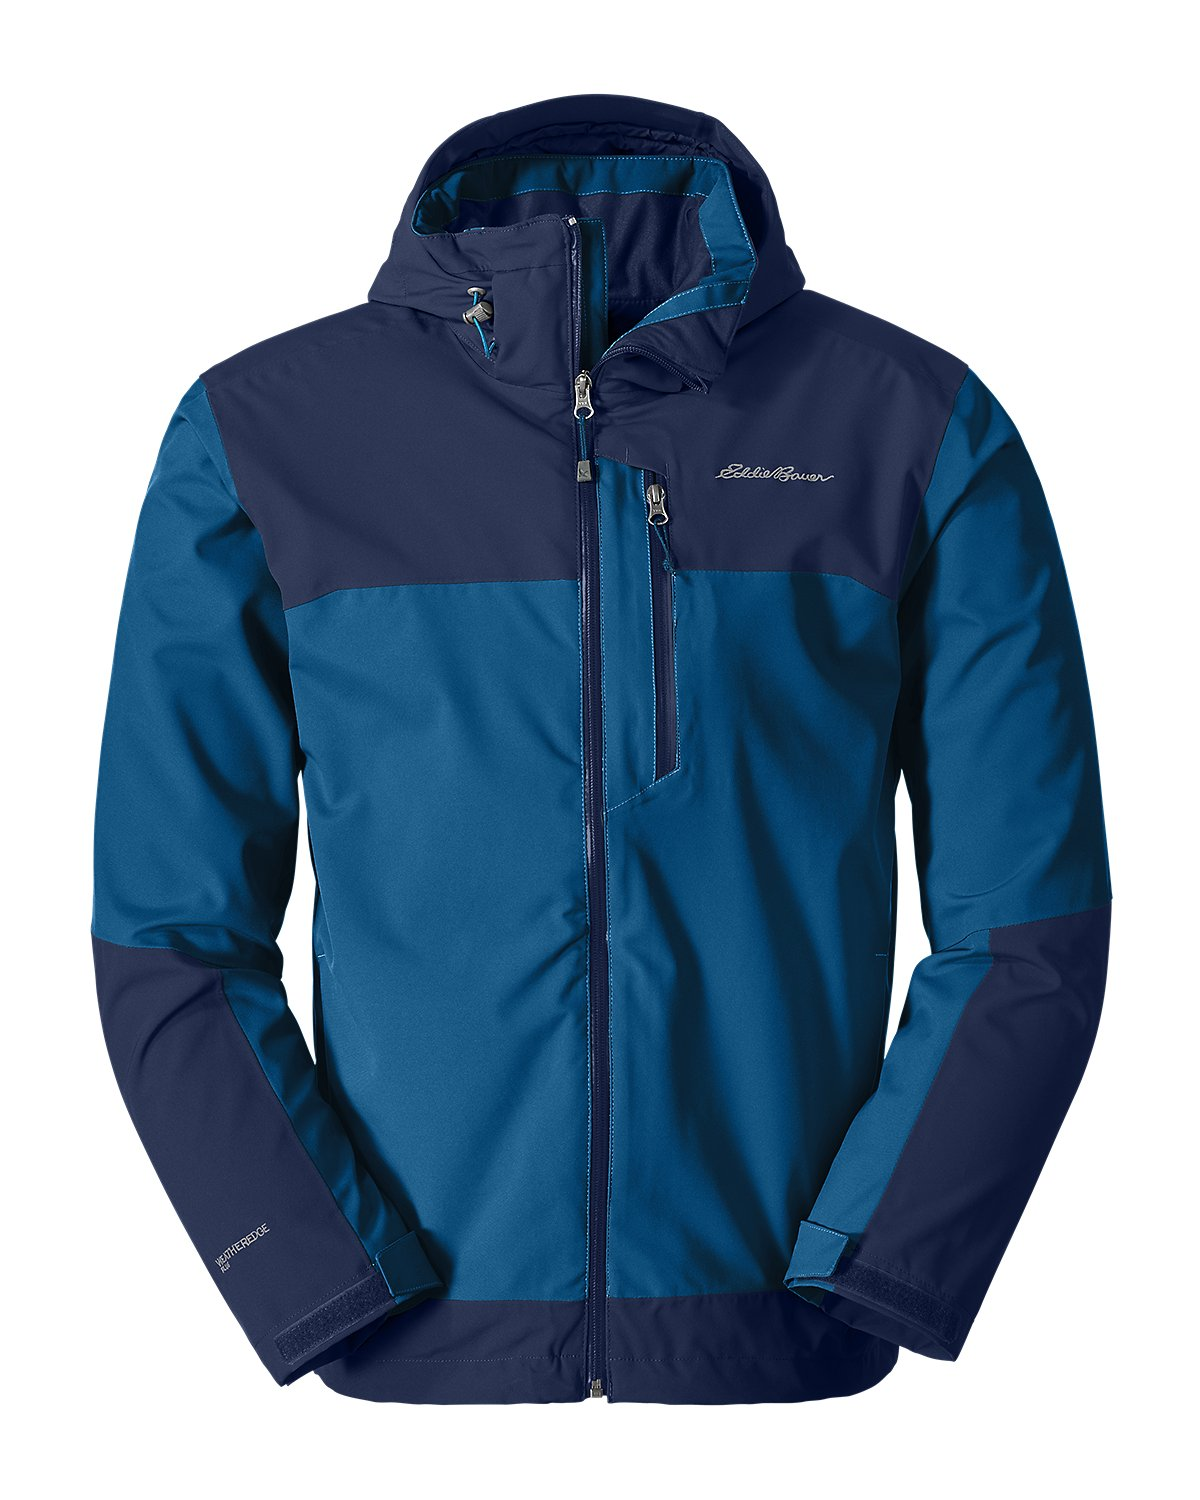 Eddie Bauer Women's All-Mountain Shell Jacket (Multi Color)